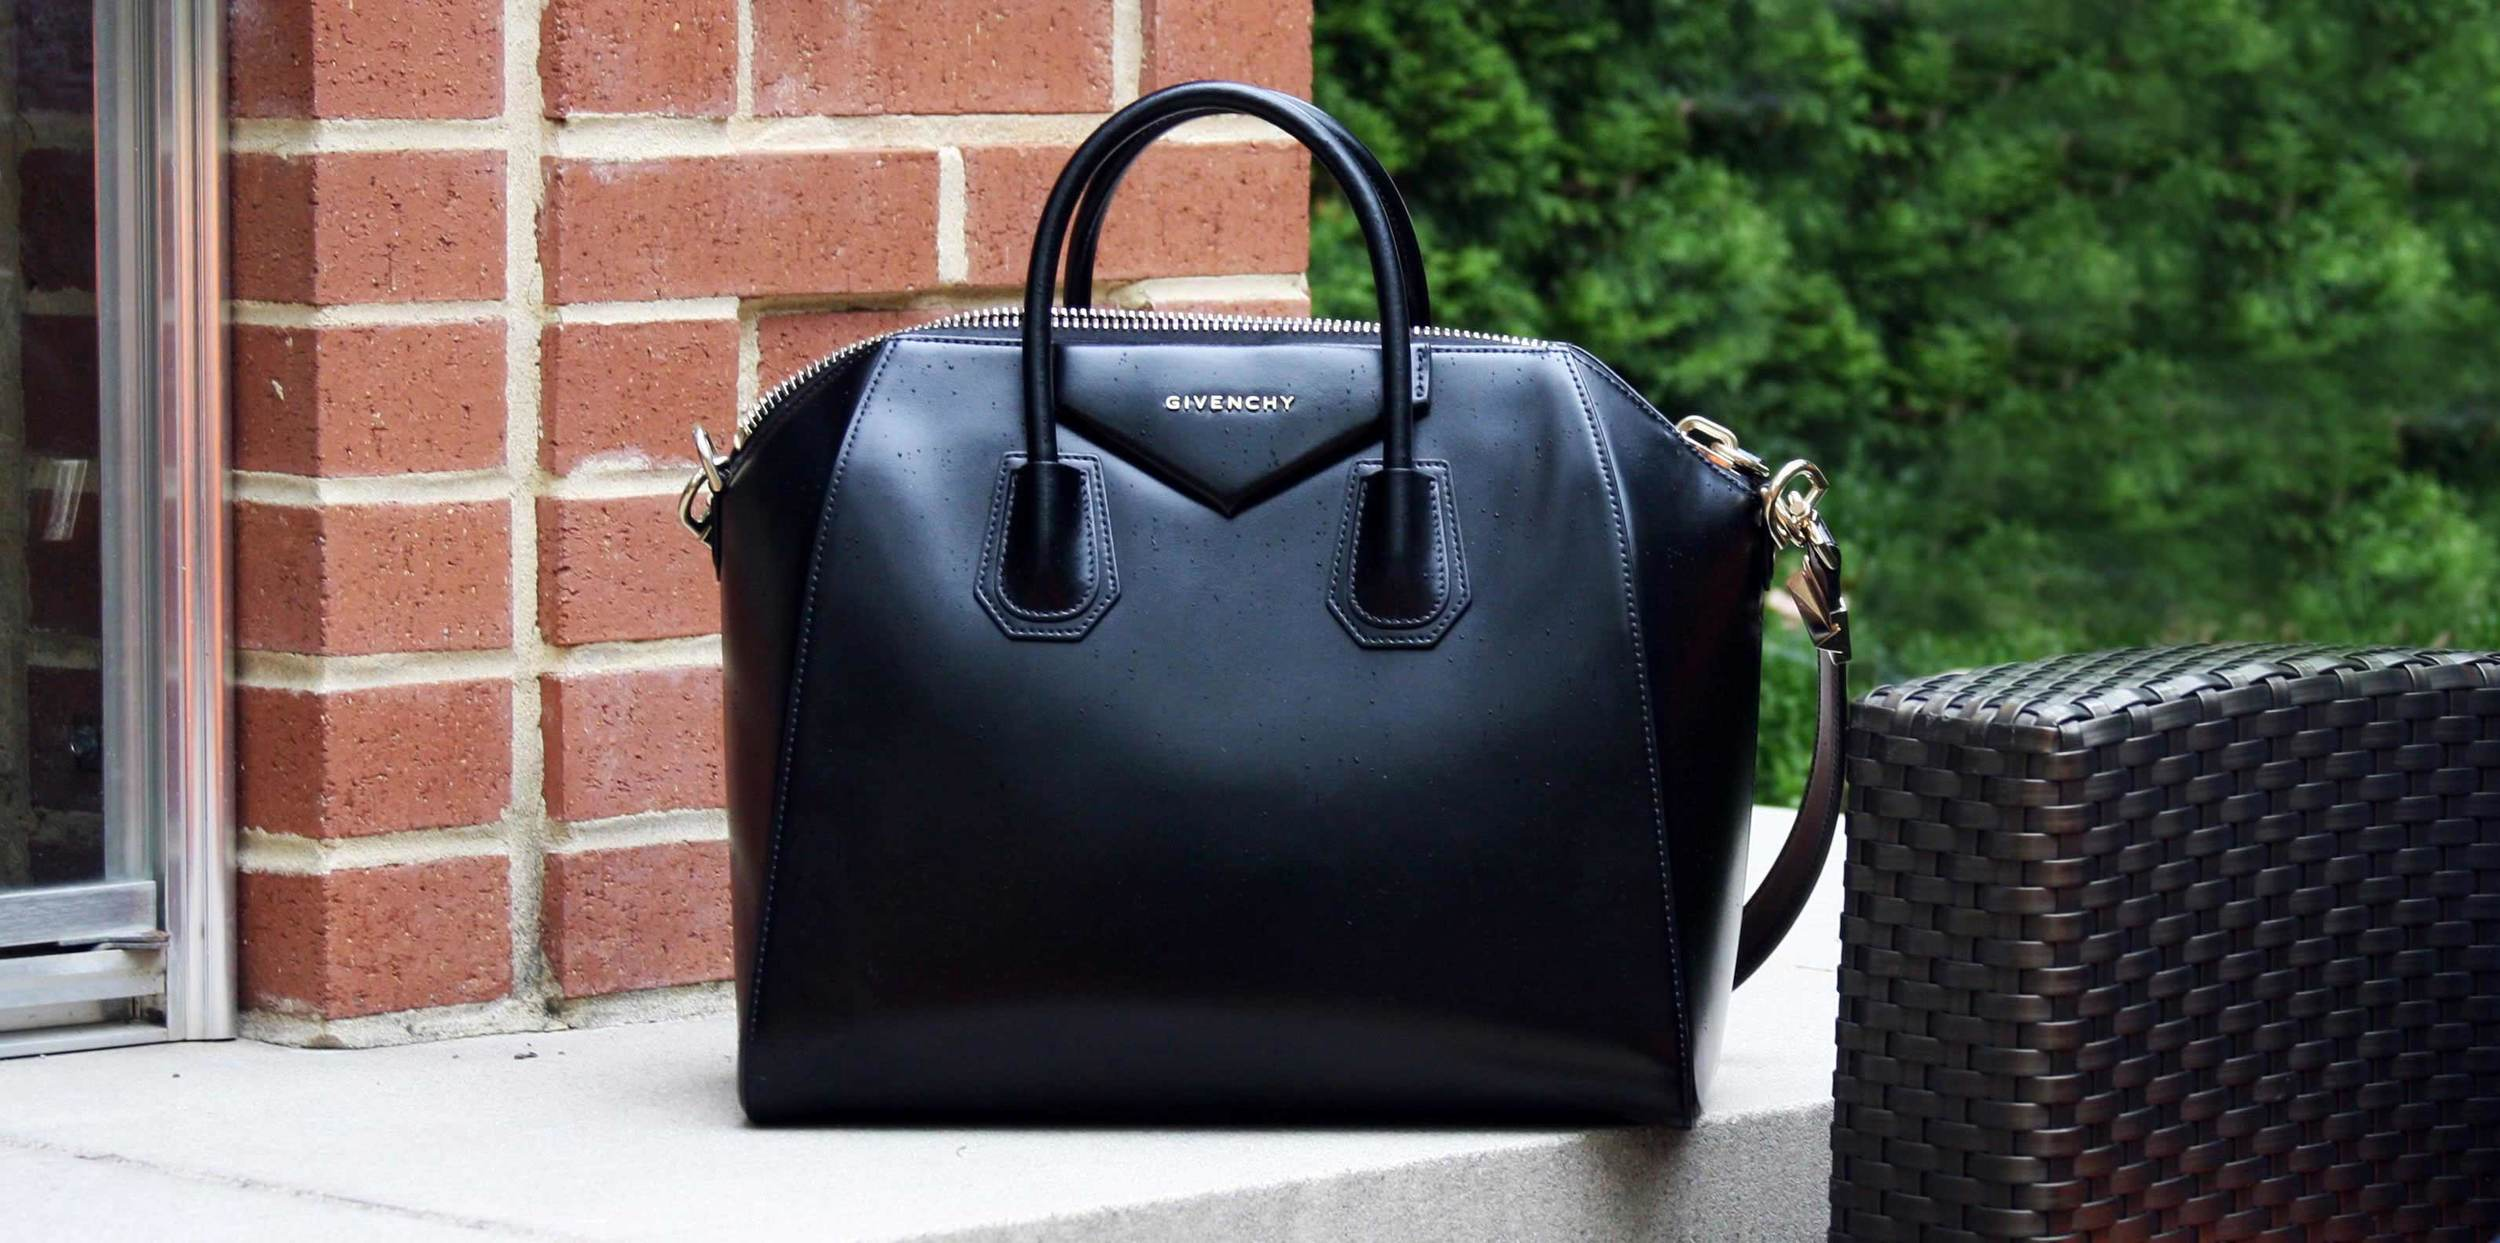 womens-fashion-blog-givenchy-handbag-black-leather-thank-you-cinderella.jpg